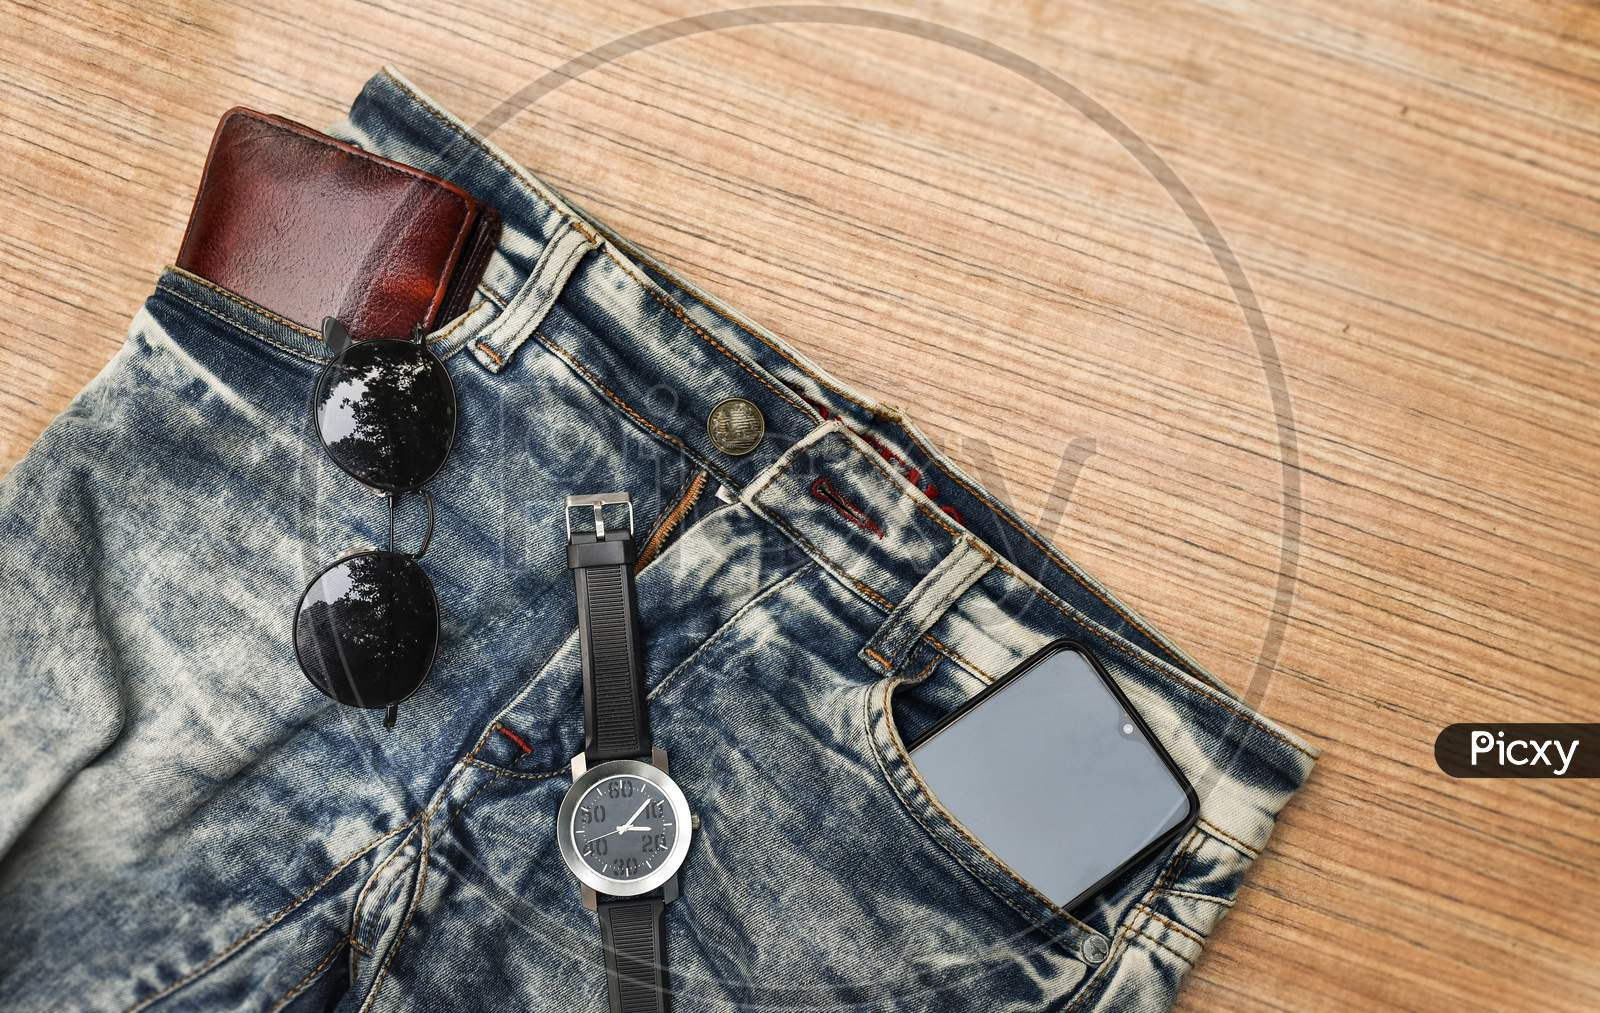 Top View Accessories To Travel With Man Clothing Concept.Telephone,Bow Tie,Passport On Wooden Background.Air Plane,Sunglasses,Headphone,Tree On Wood Table.Flat Lay.Copy Space.Music Listening.